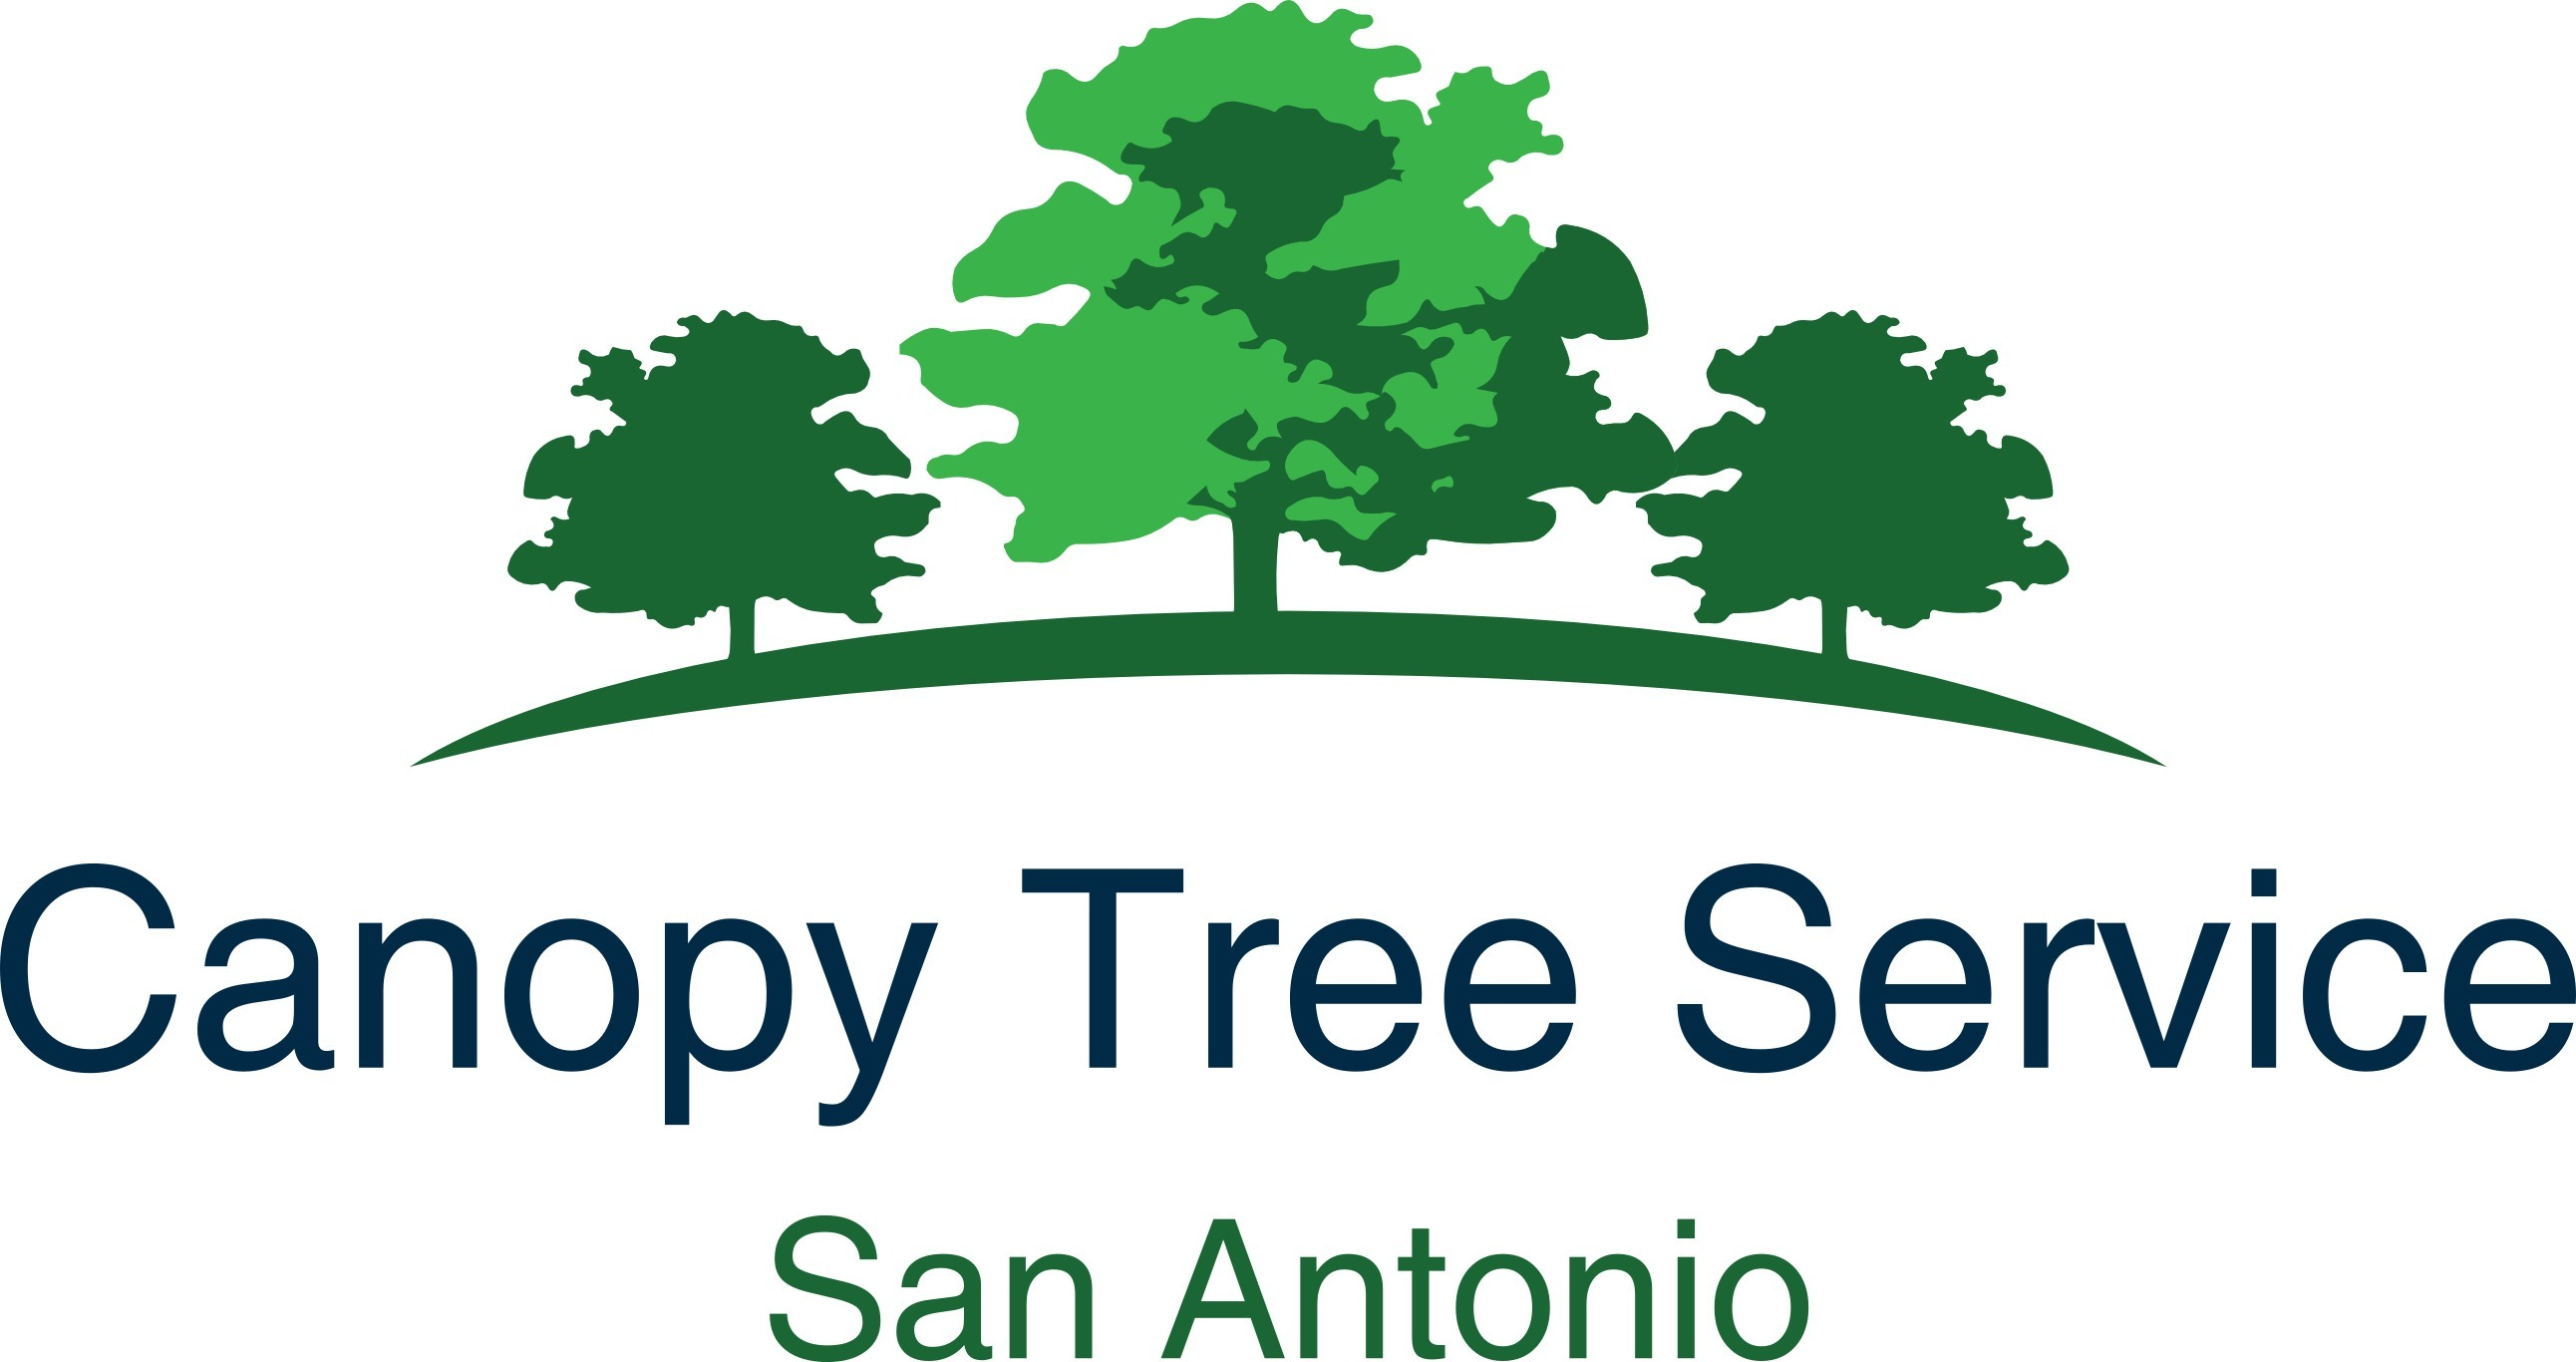 For maps and directions to Canopy Tree Service view the map to the right. For reviews of Canopy Tree Service see below.  sc 1 st  ChamberofCommerce.com & Canopy Tree Service in San Antonio TX 78238 - ChamberofCommerce.com